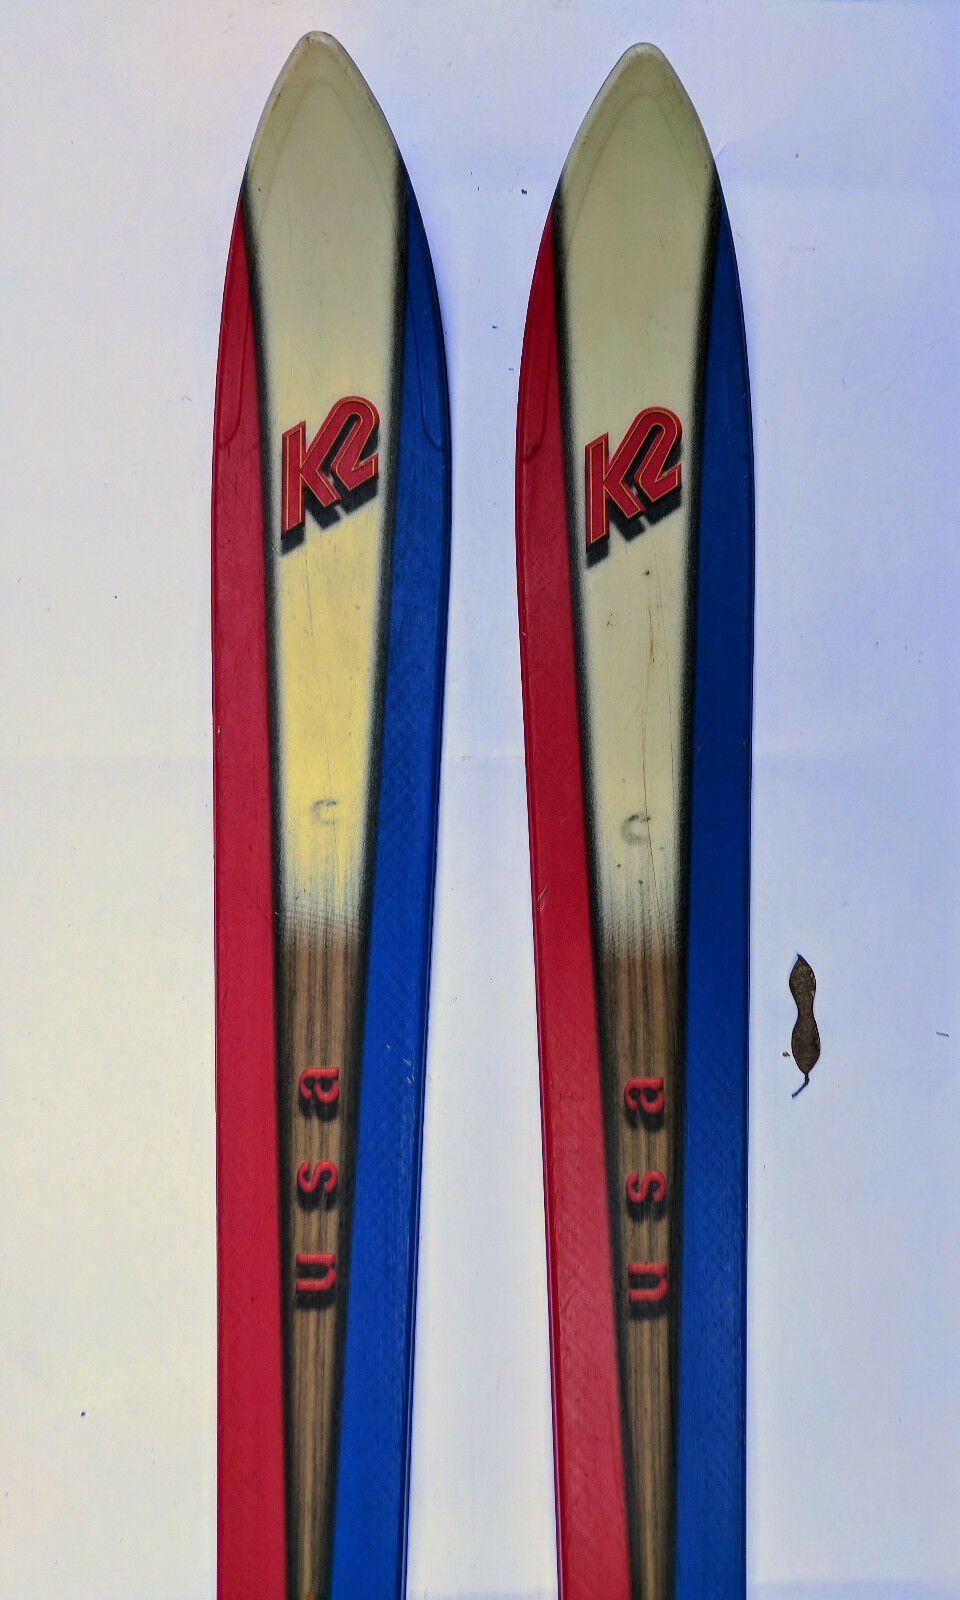 K2 Four 83 skis 183cm one prior mount for K2 plate